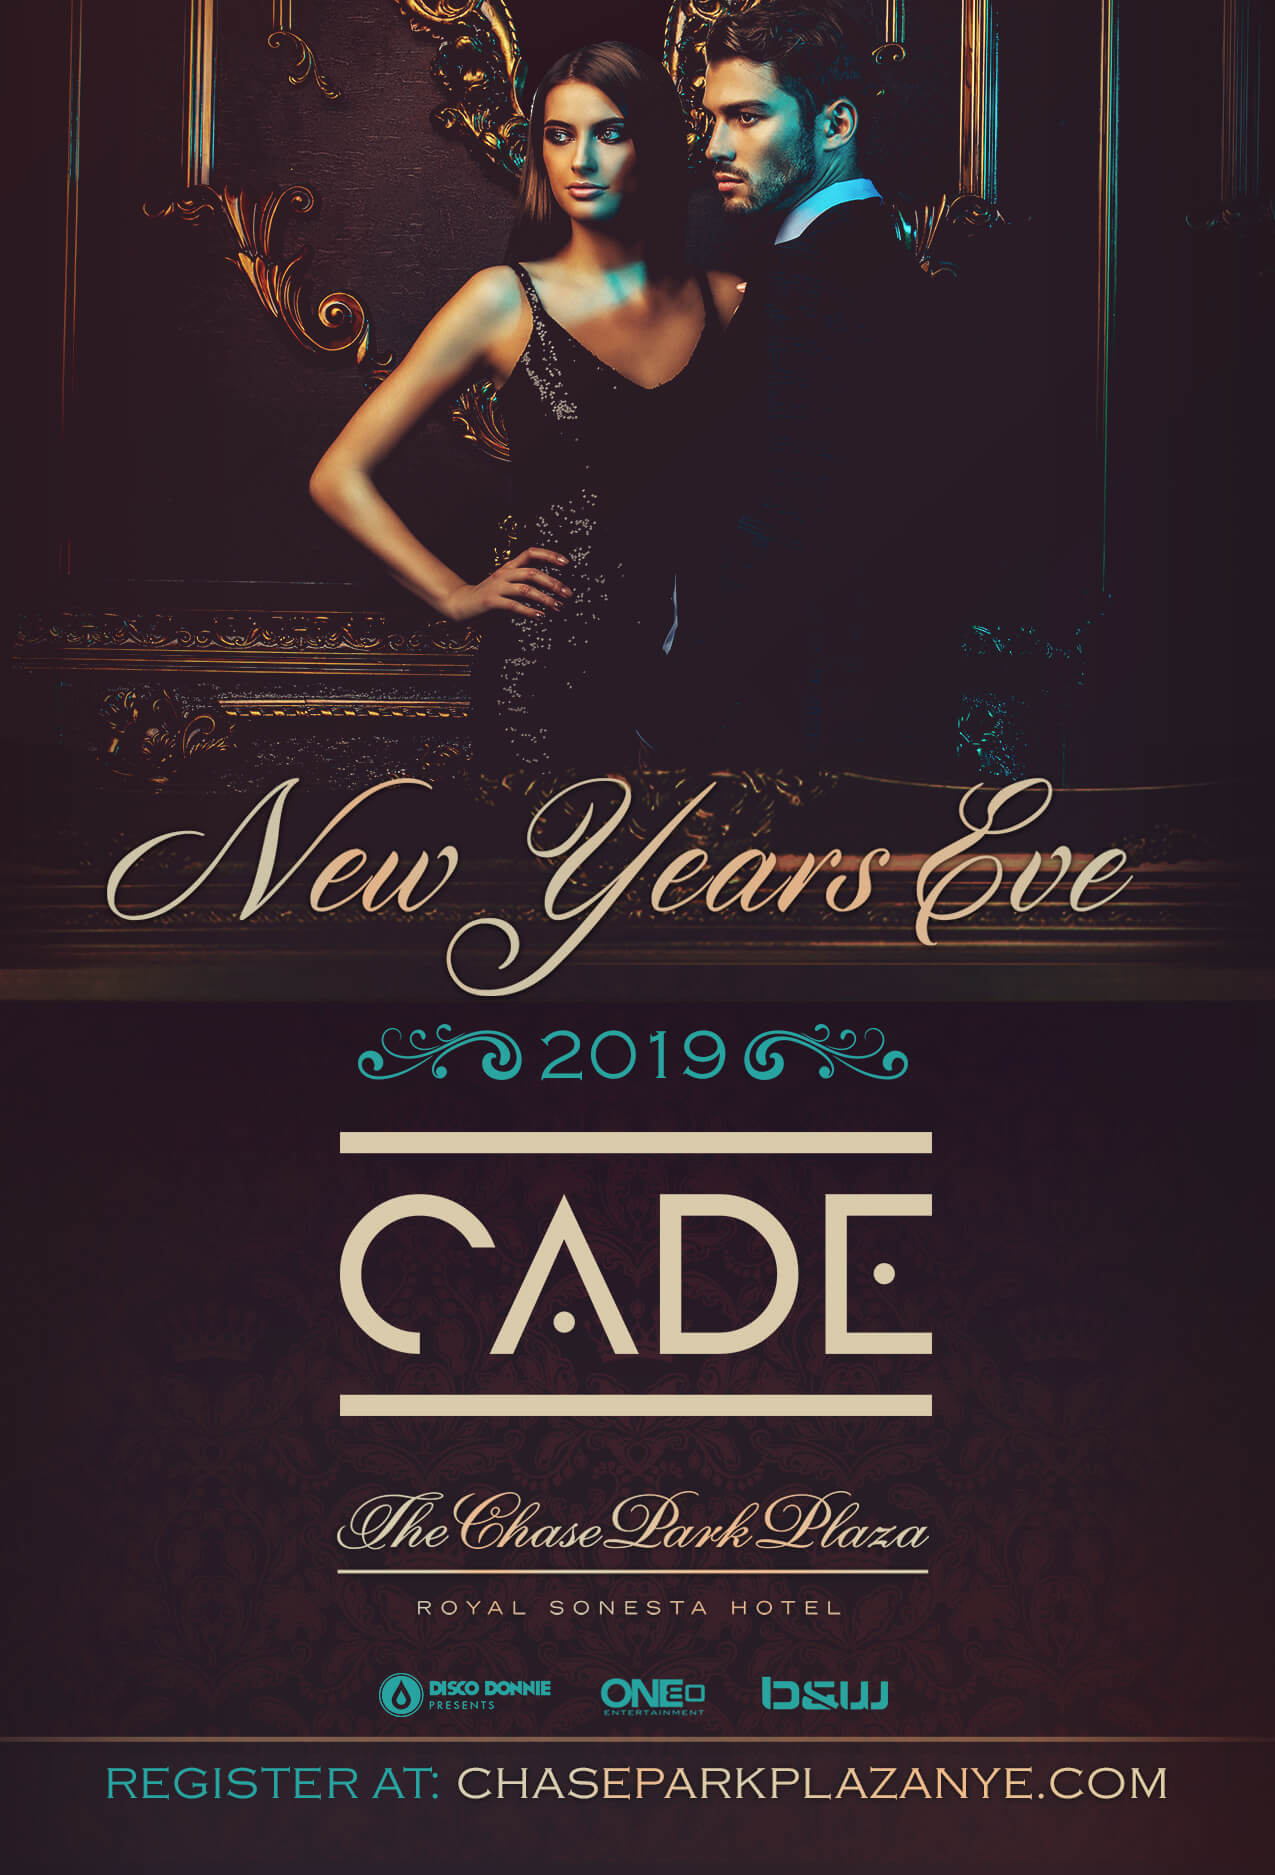 New Year's Eve Ball at Chase Park Plaza